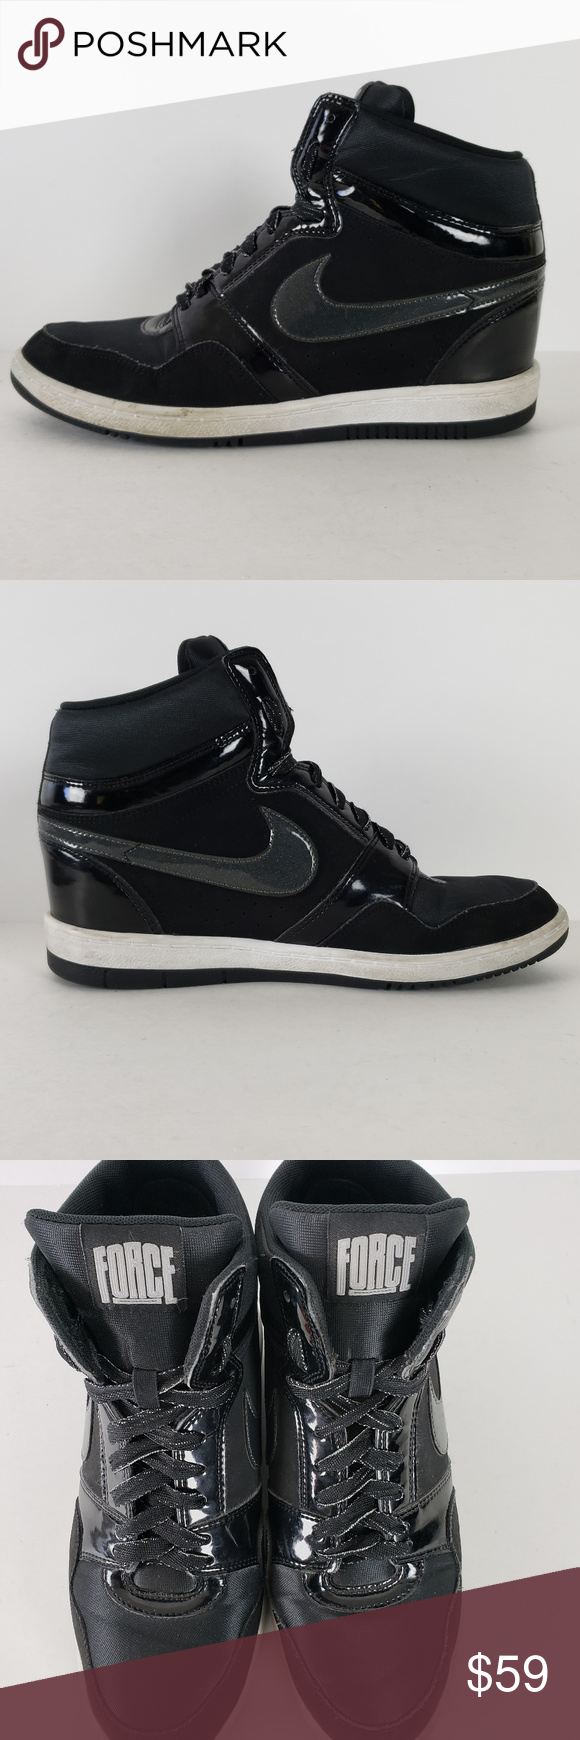 Nike Force Sky High 629746 001 Women Shoes Size 11 This is